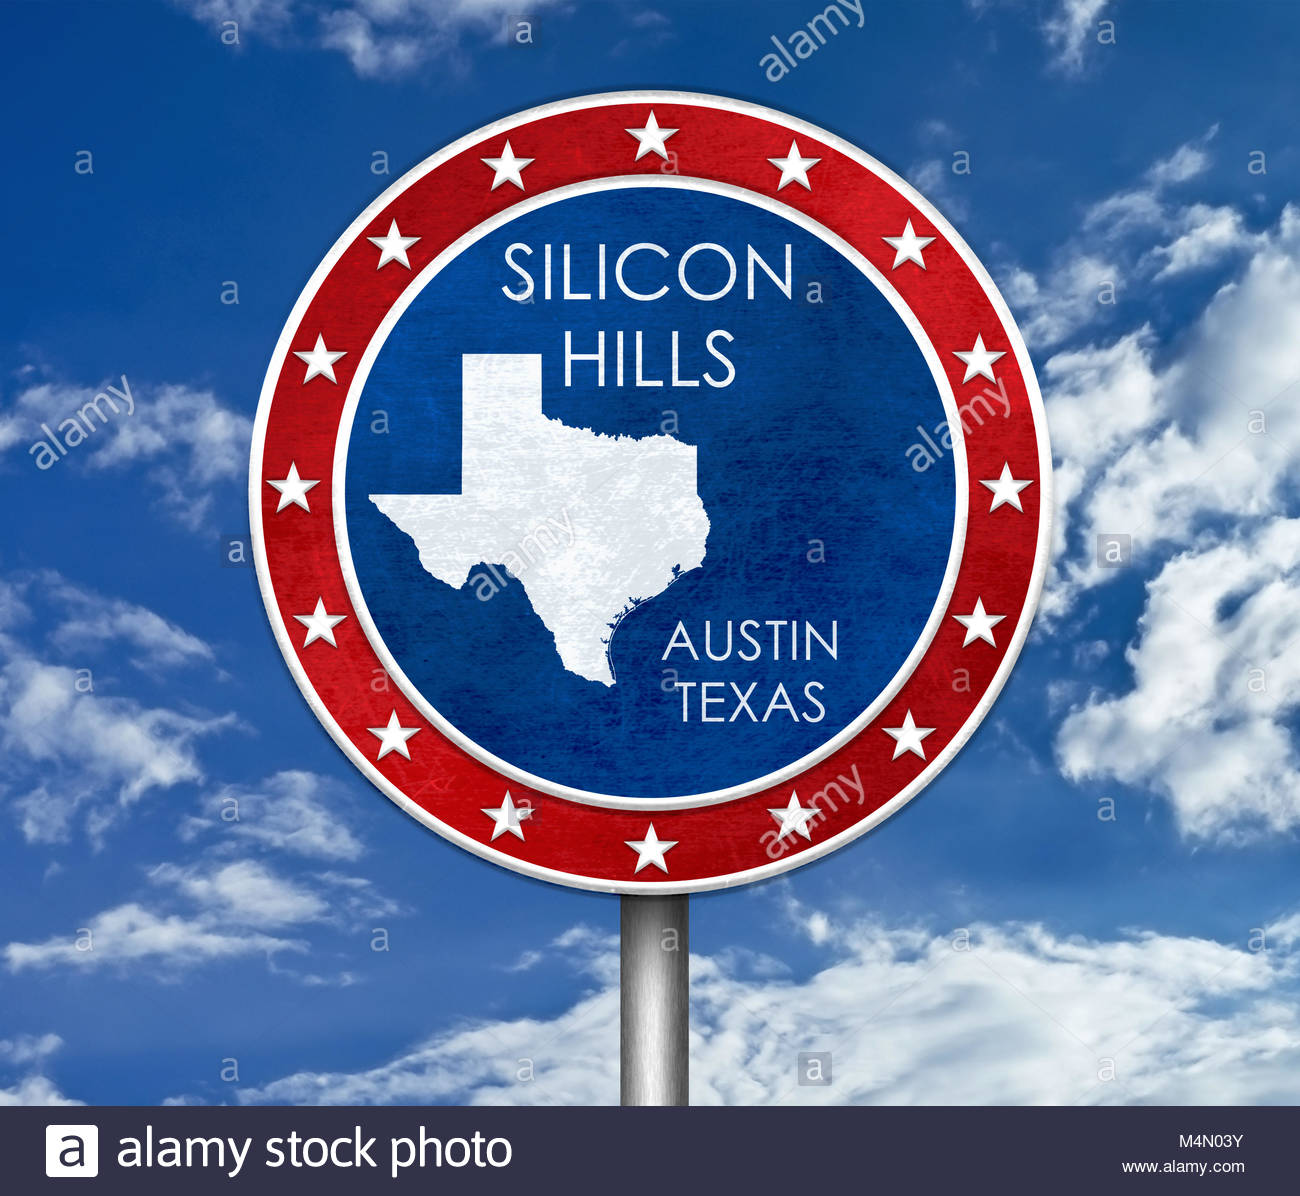 Silicon Hills à Austin au Texas - carte illustration Photo Stock